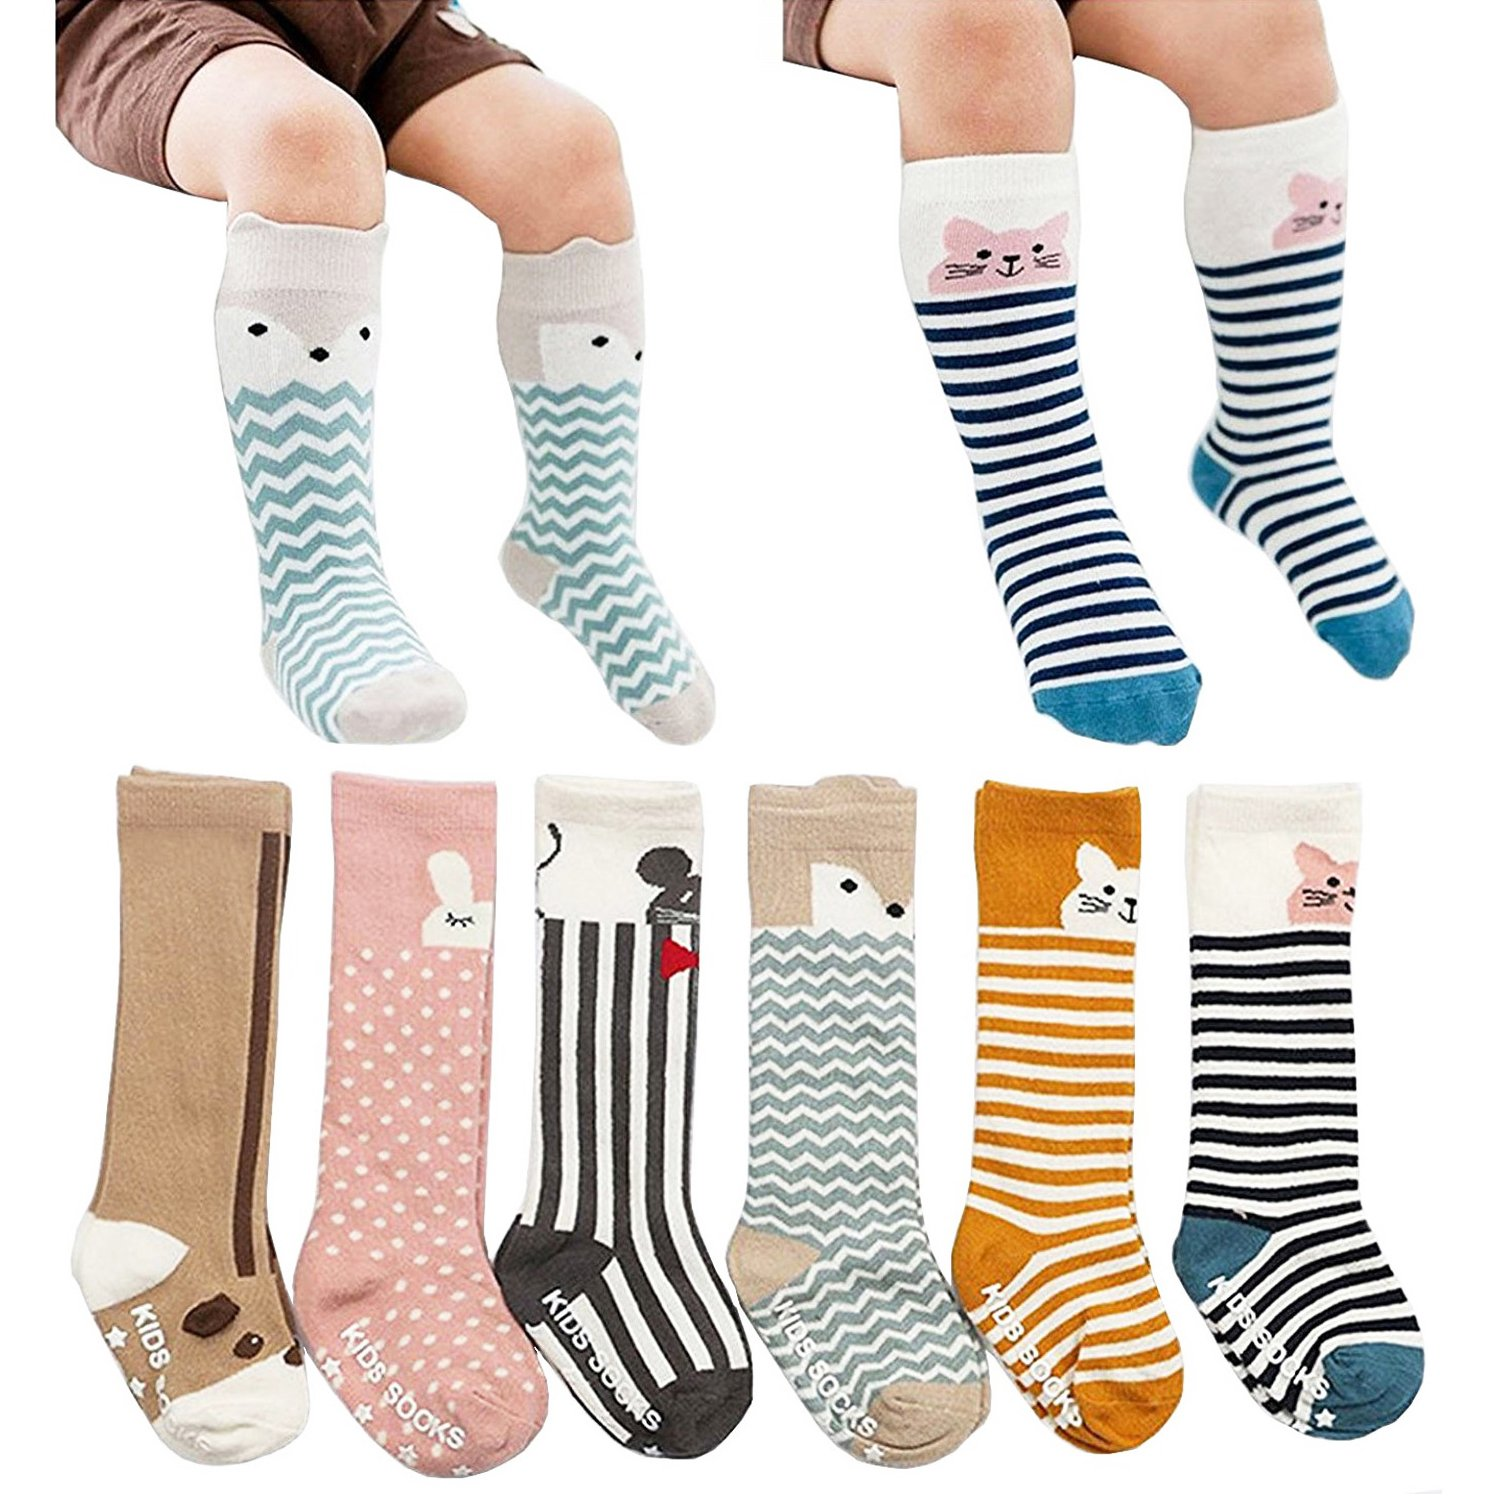 [6 Pairs] Toddler Socks, Non Skid Knee High Cotton Socks for Baby Boys & Girls (M(2-4 Years)) by Fansco